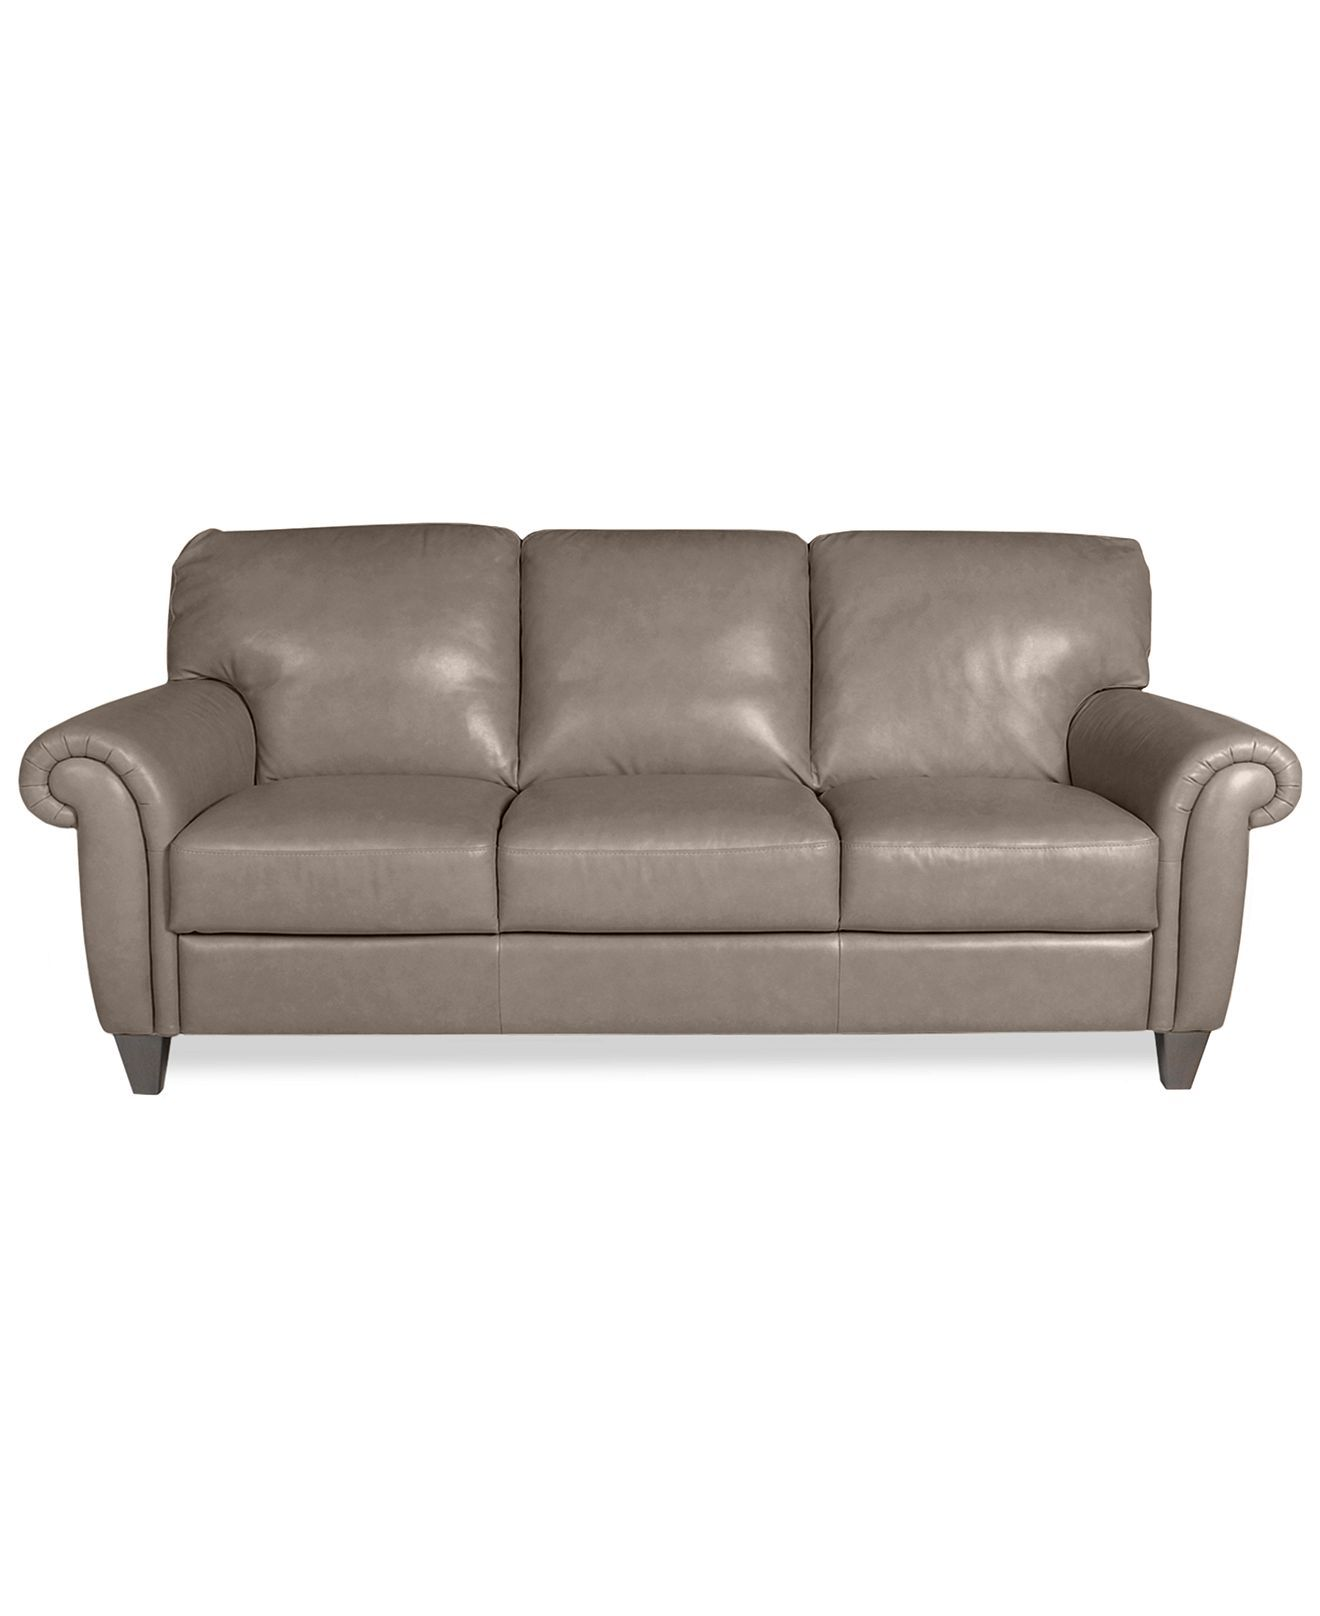 Arianna Leather Sofa Couches Sofas Furniture Macy S